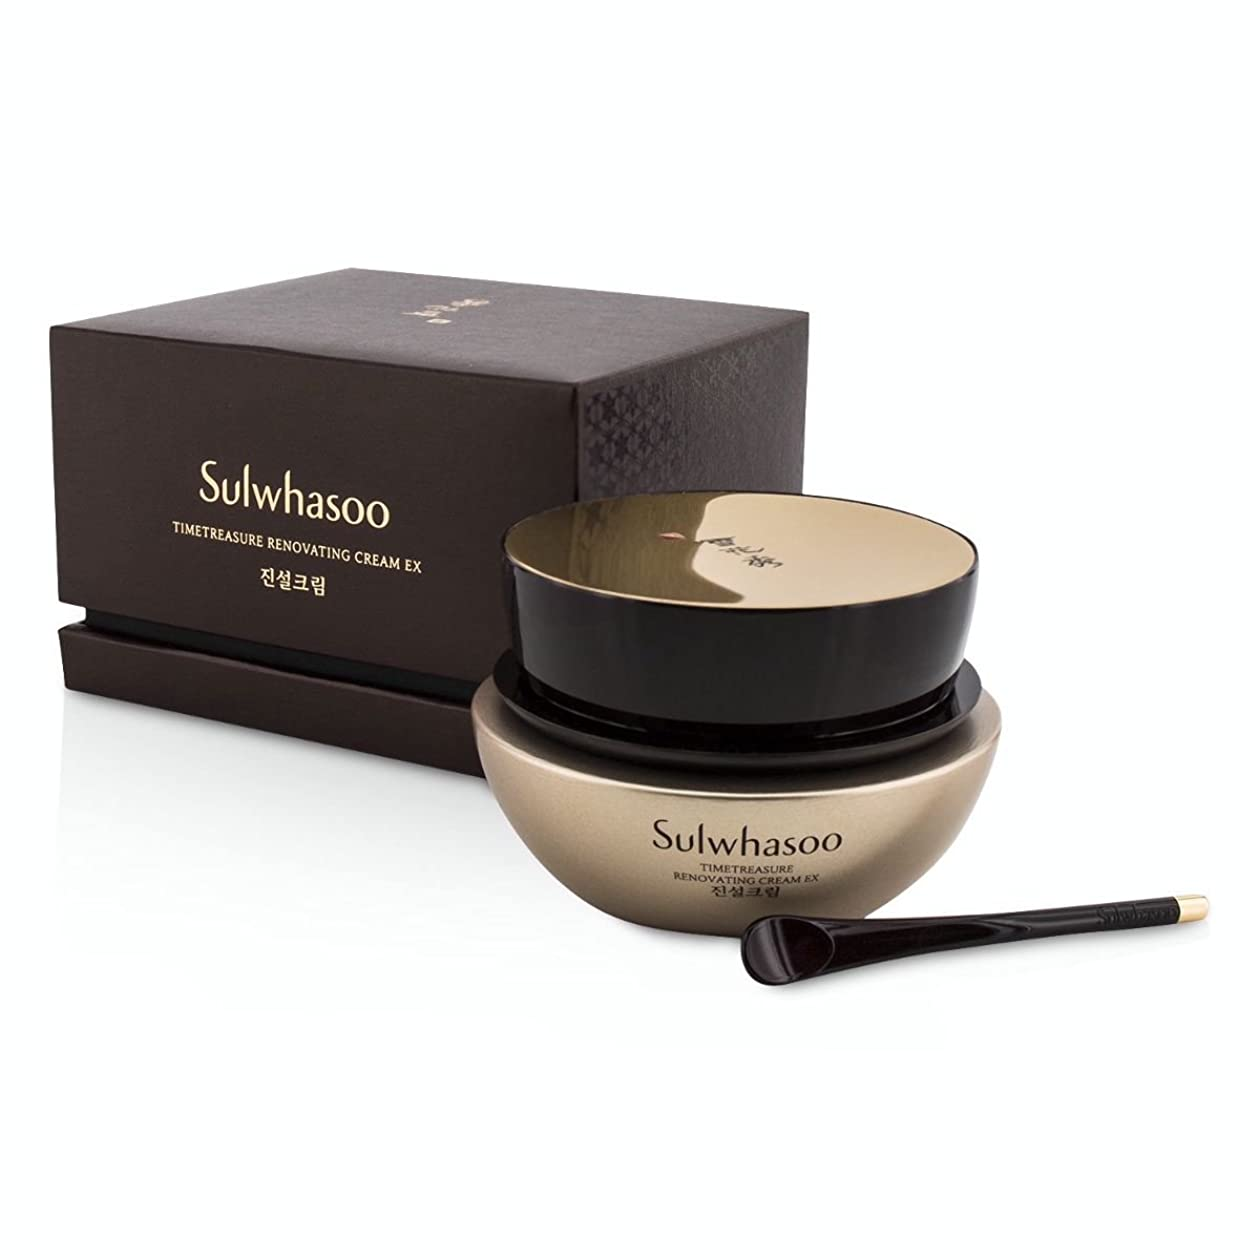 [Sulwhasoo] Timetreasure Renovating Cream EX (Manufacture Date: 02/2015) 60ml/2oz